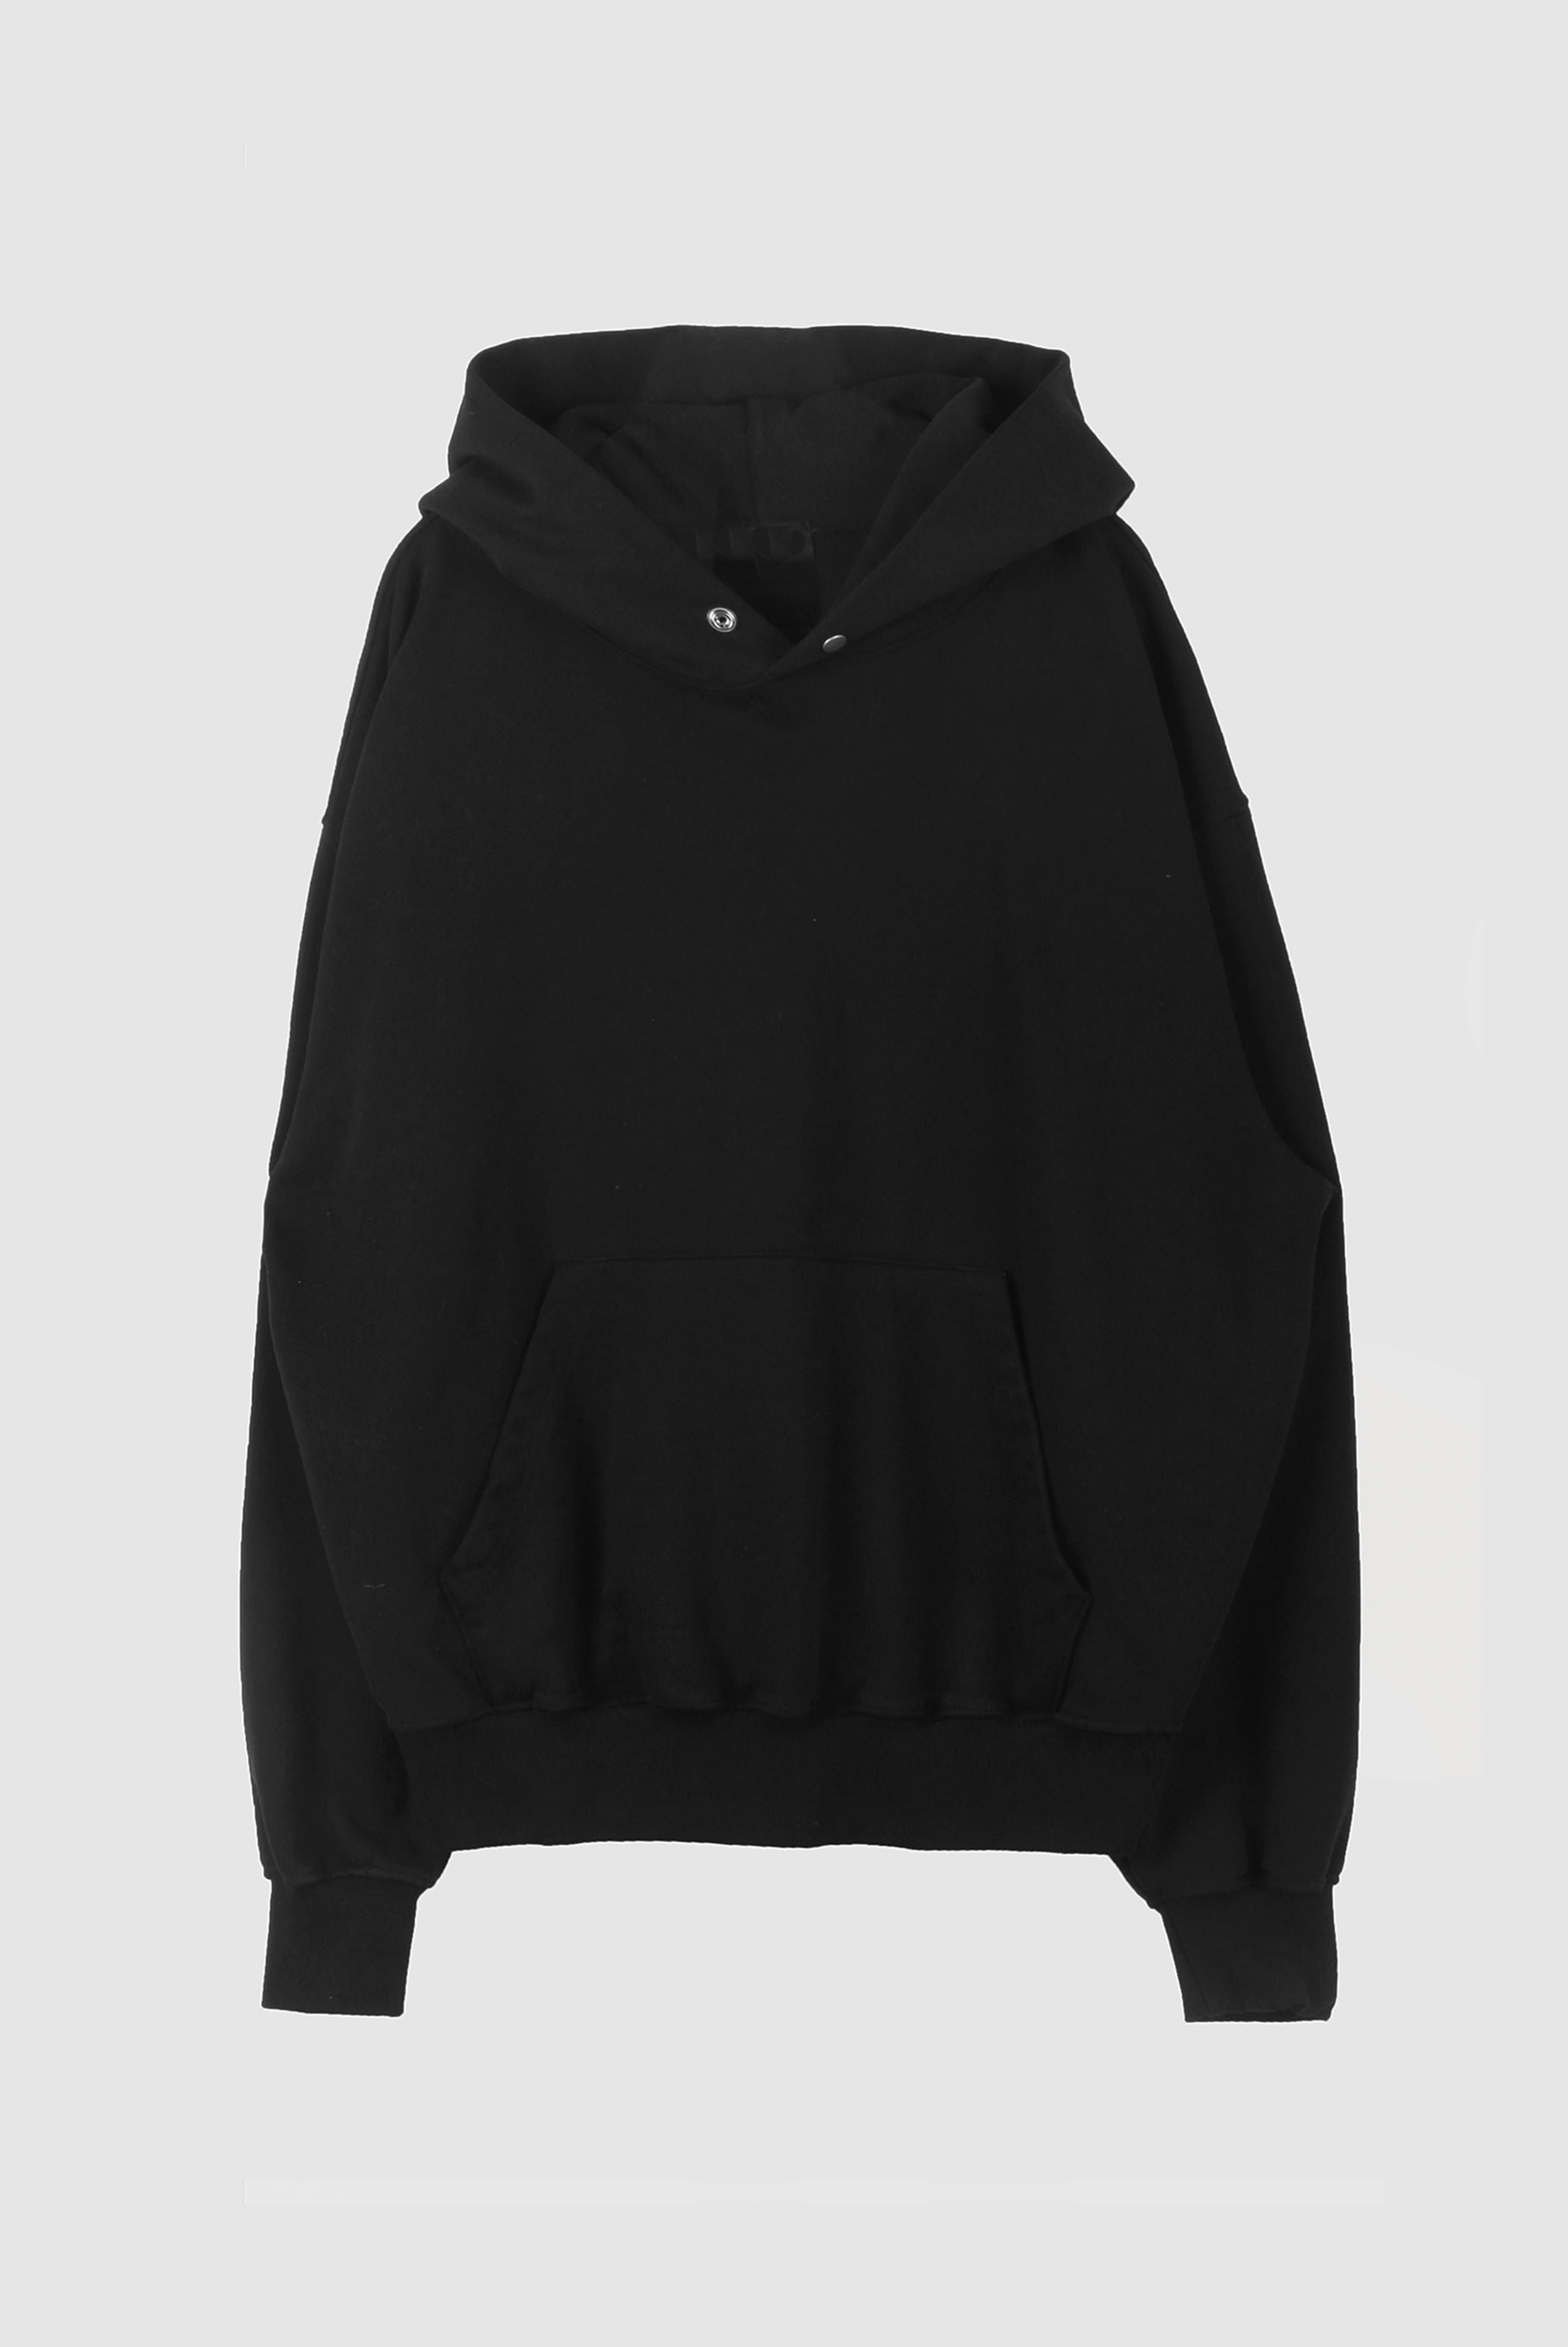 Button_Snap Hard Hoodie